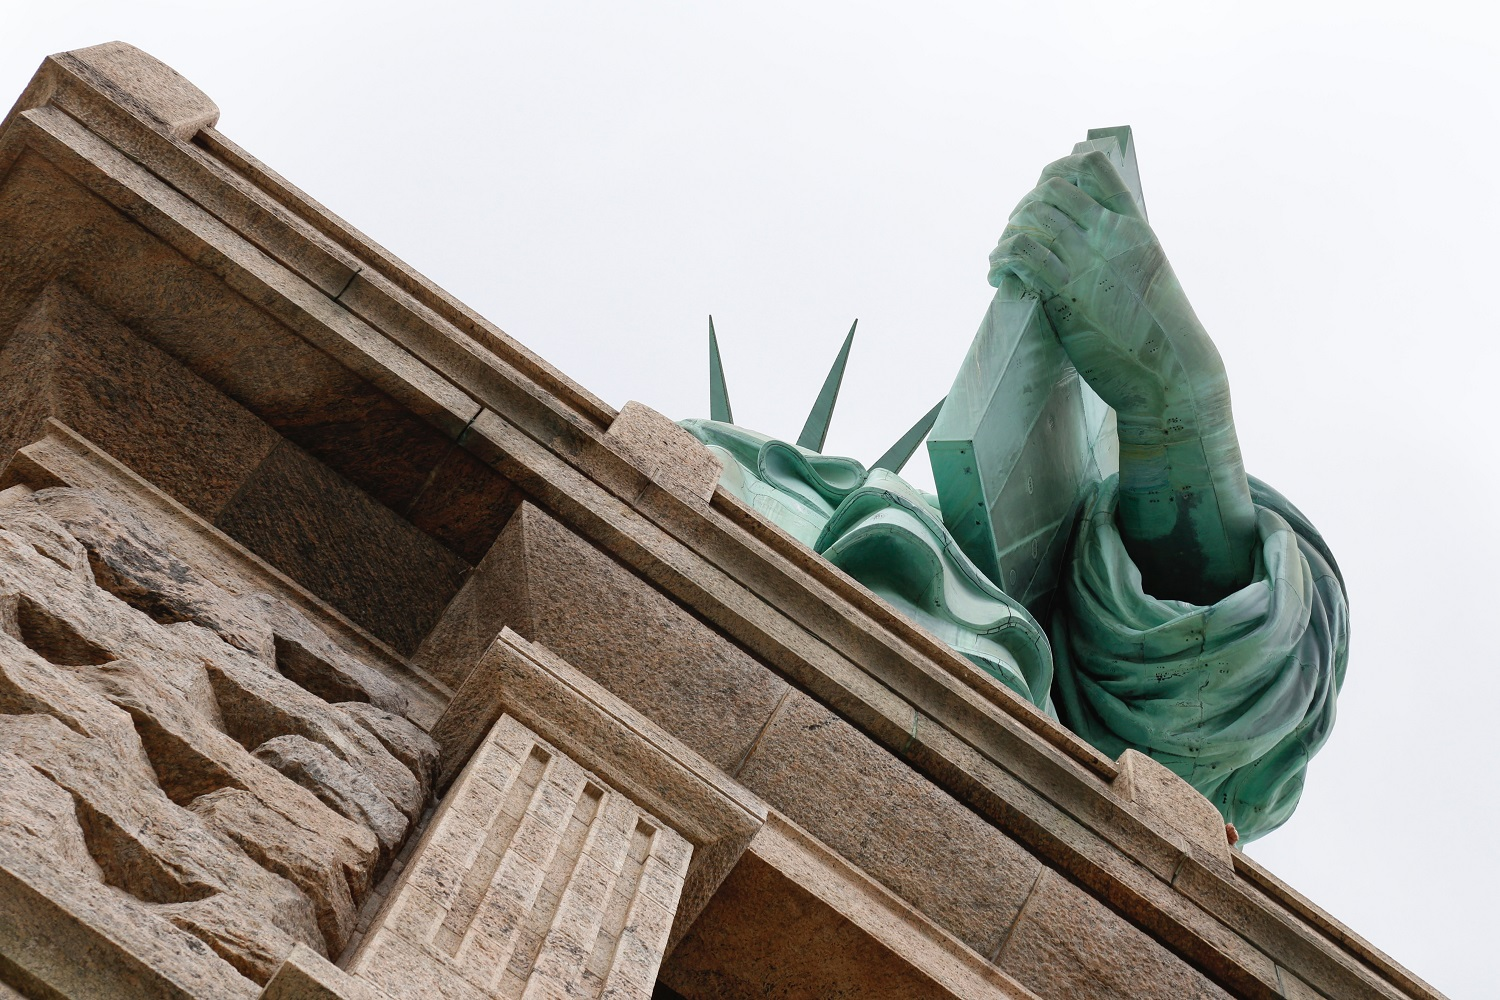 View of the Statue of Liberty taken from below at an angle so that all that is visible is her hand with the book in it an da few spikes from her crown an dthe edge of the plinth on which she stands.